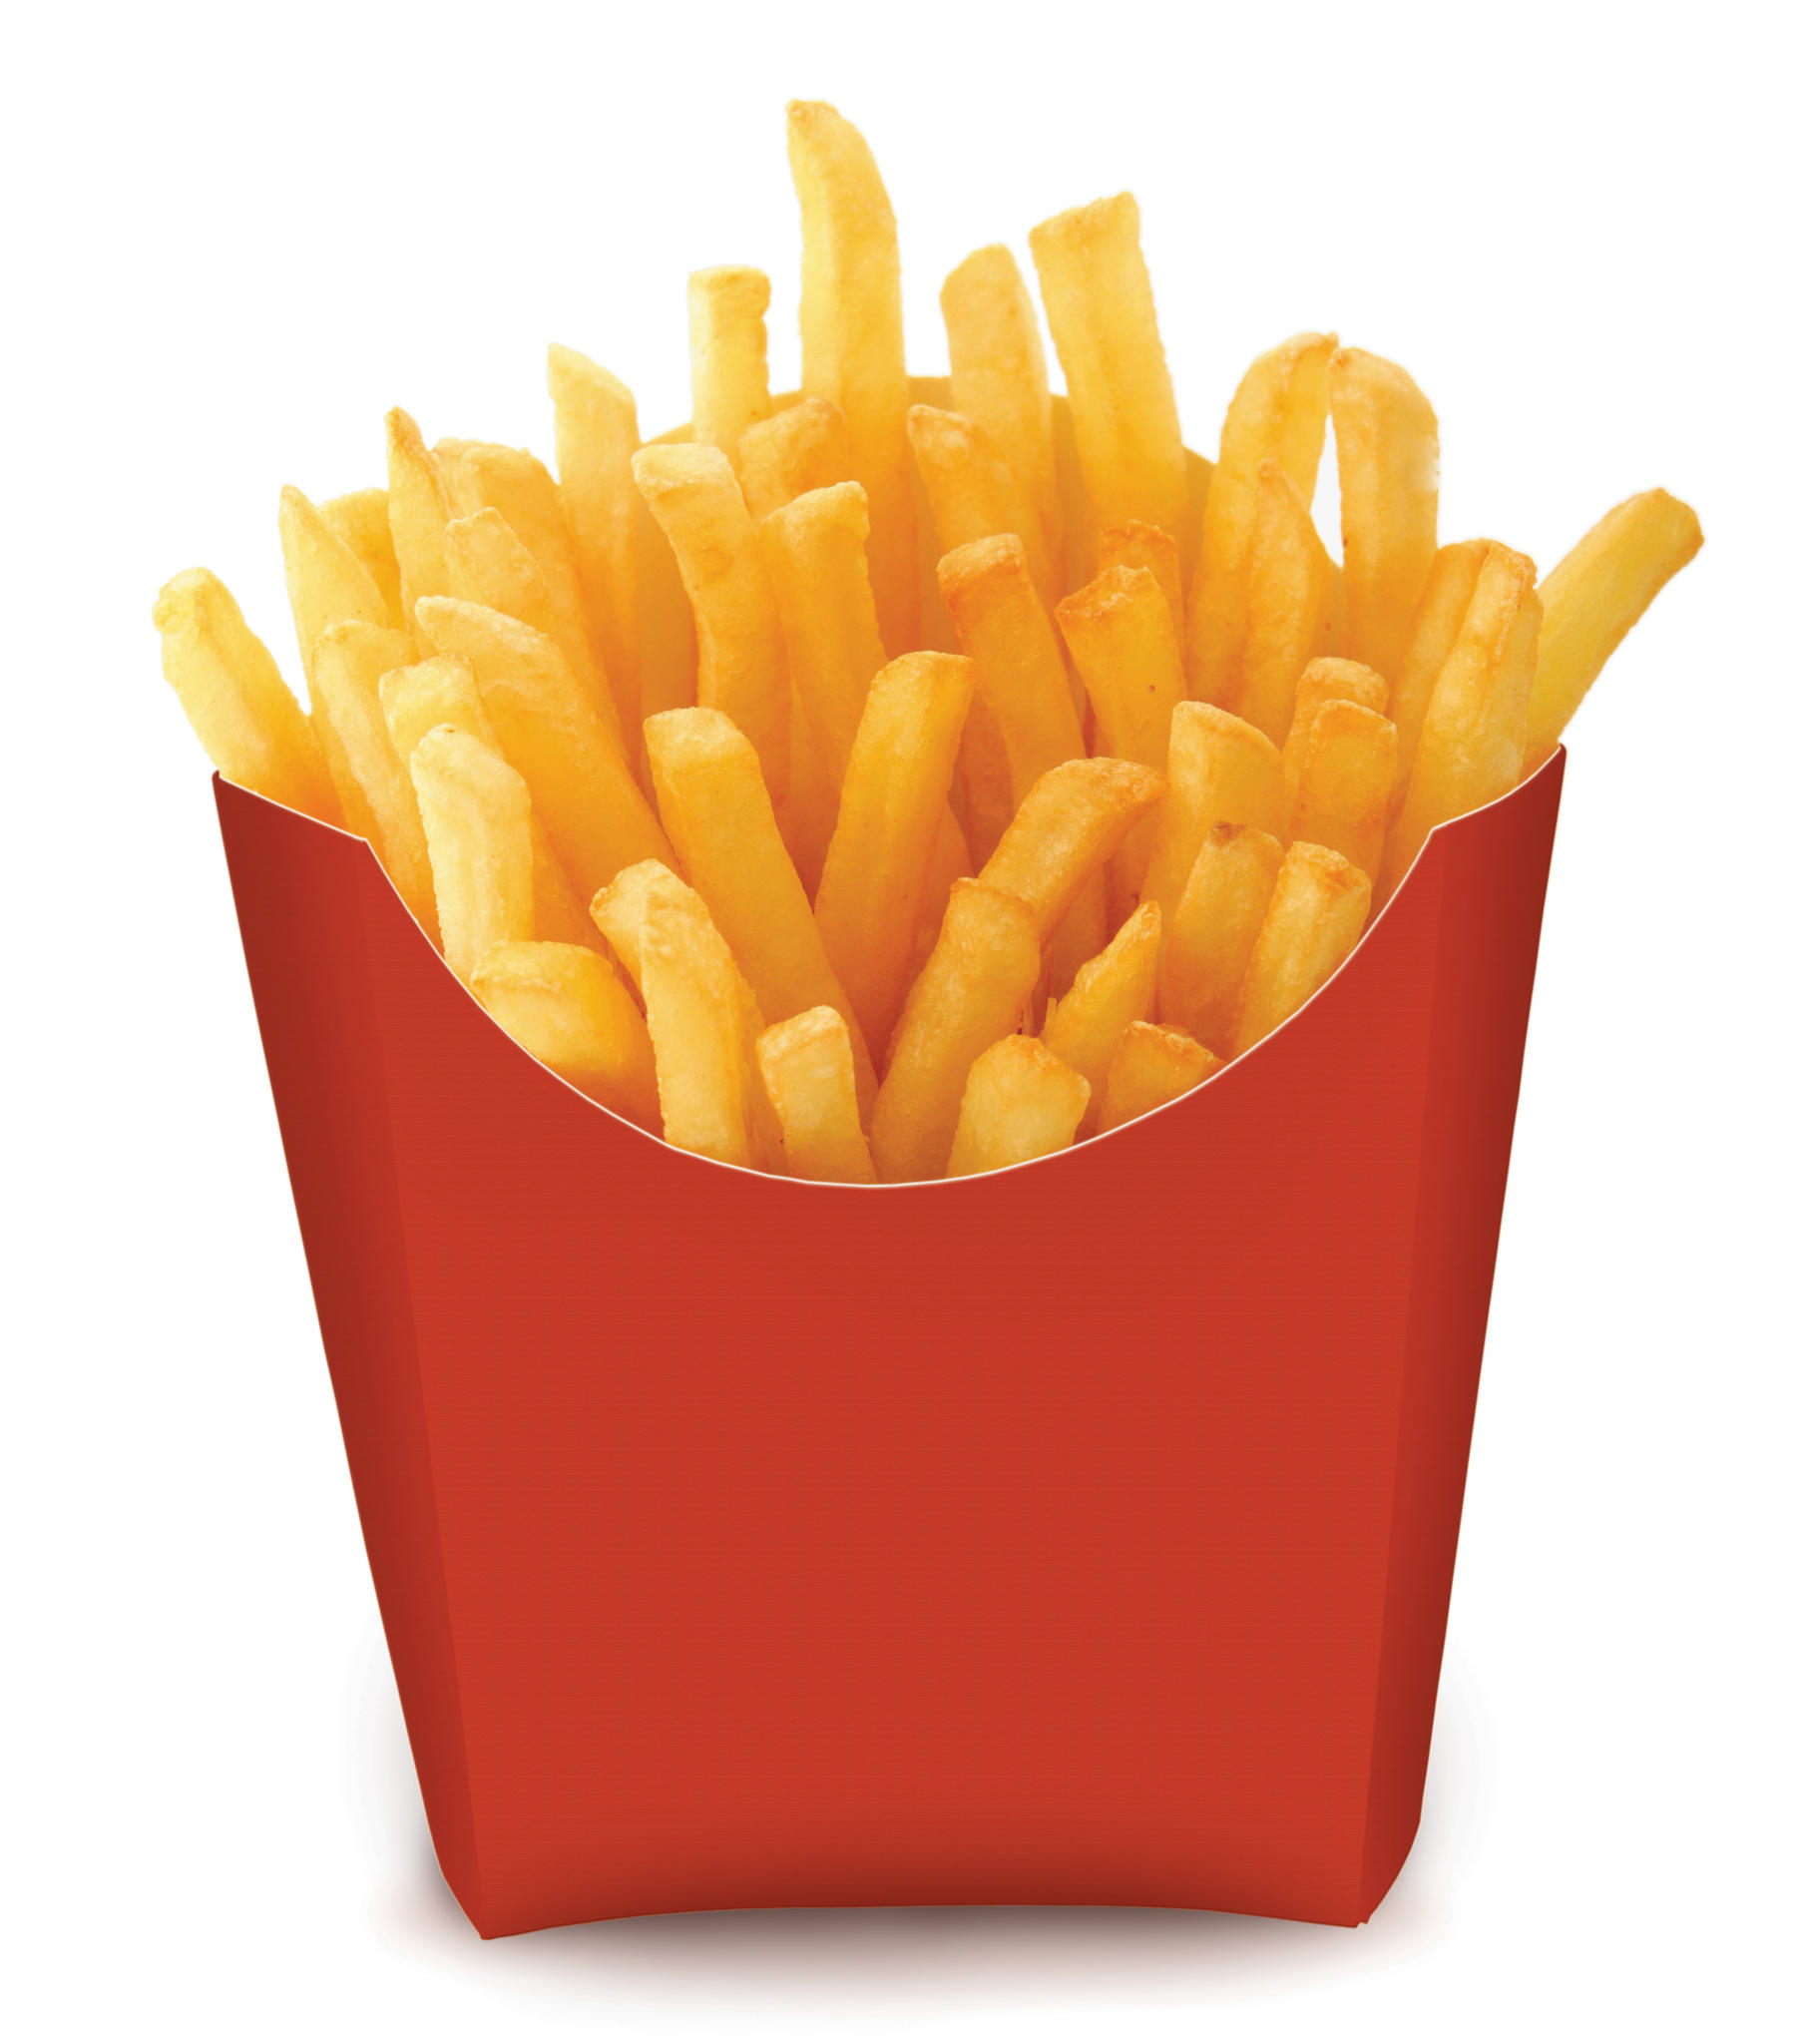 french fries wallpapers high quality download free french fries clip art transparent french fries clipart